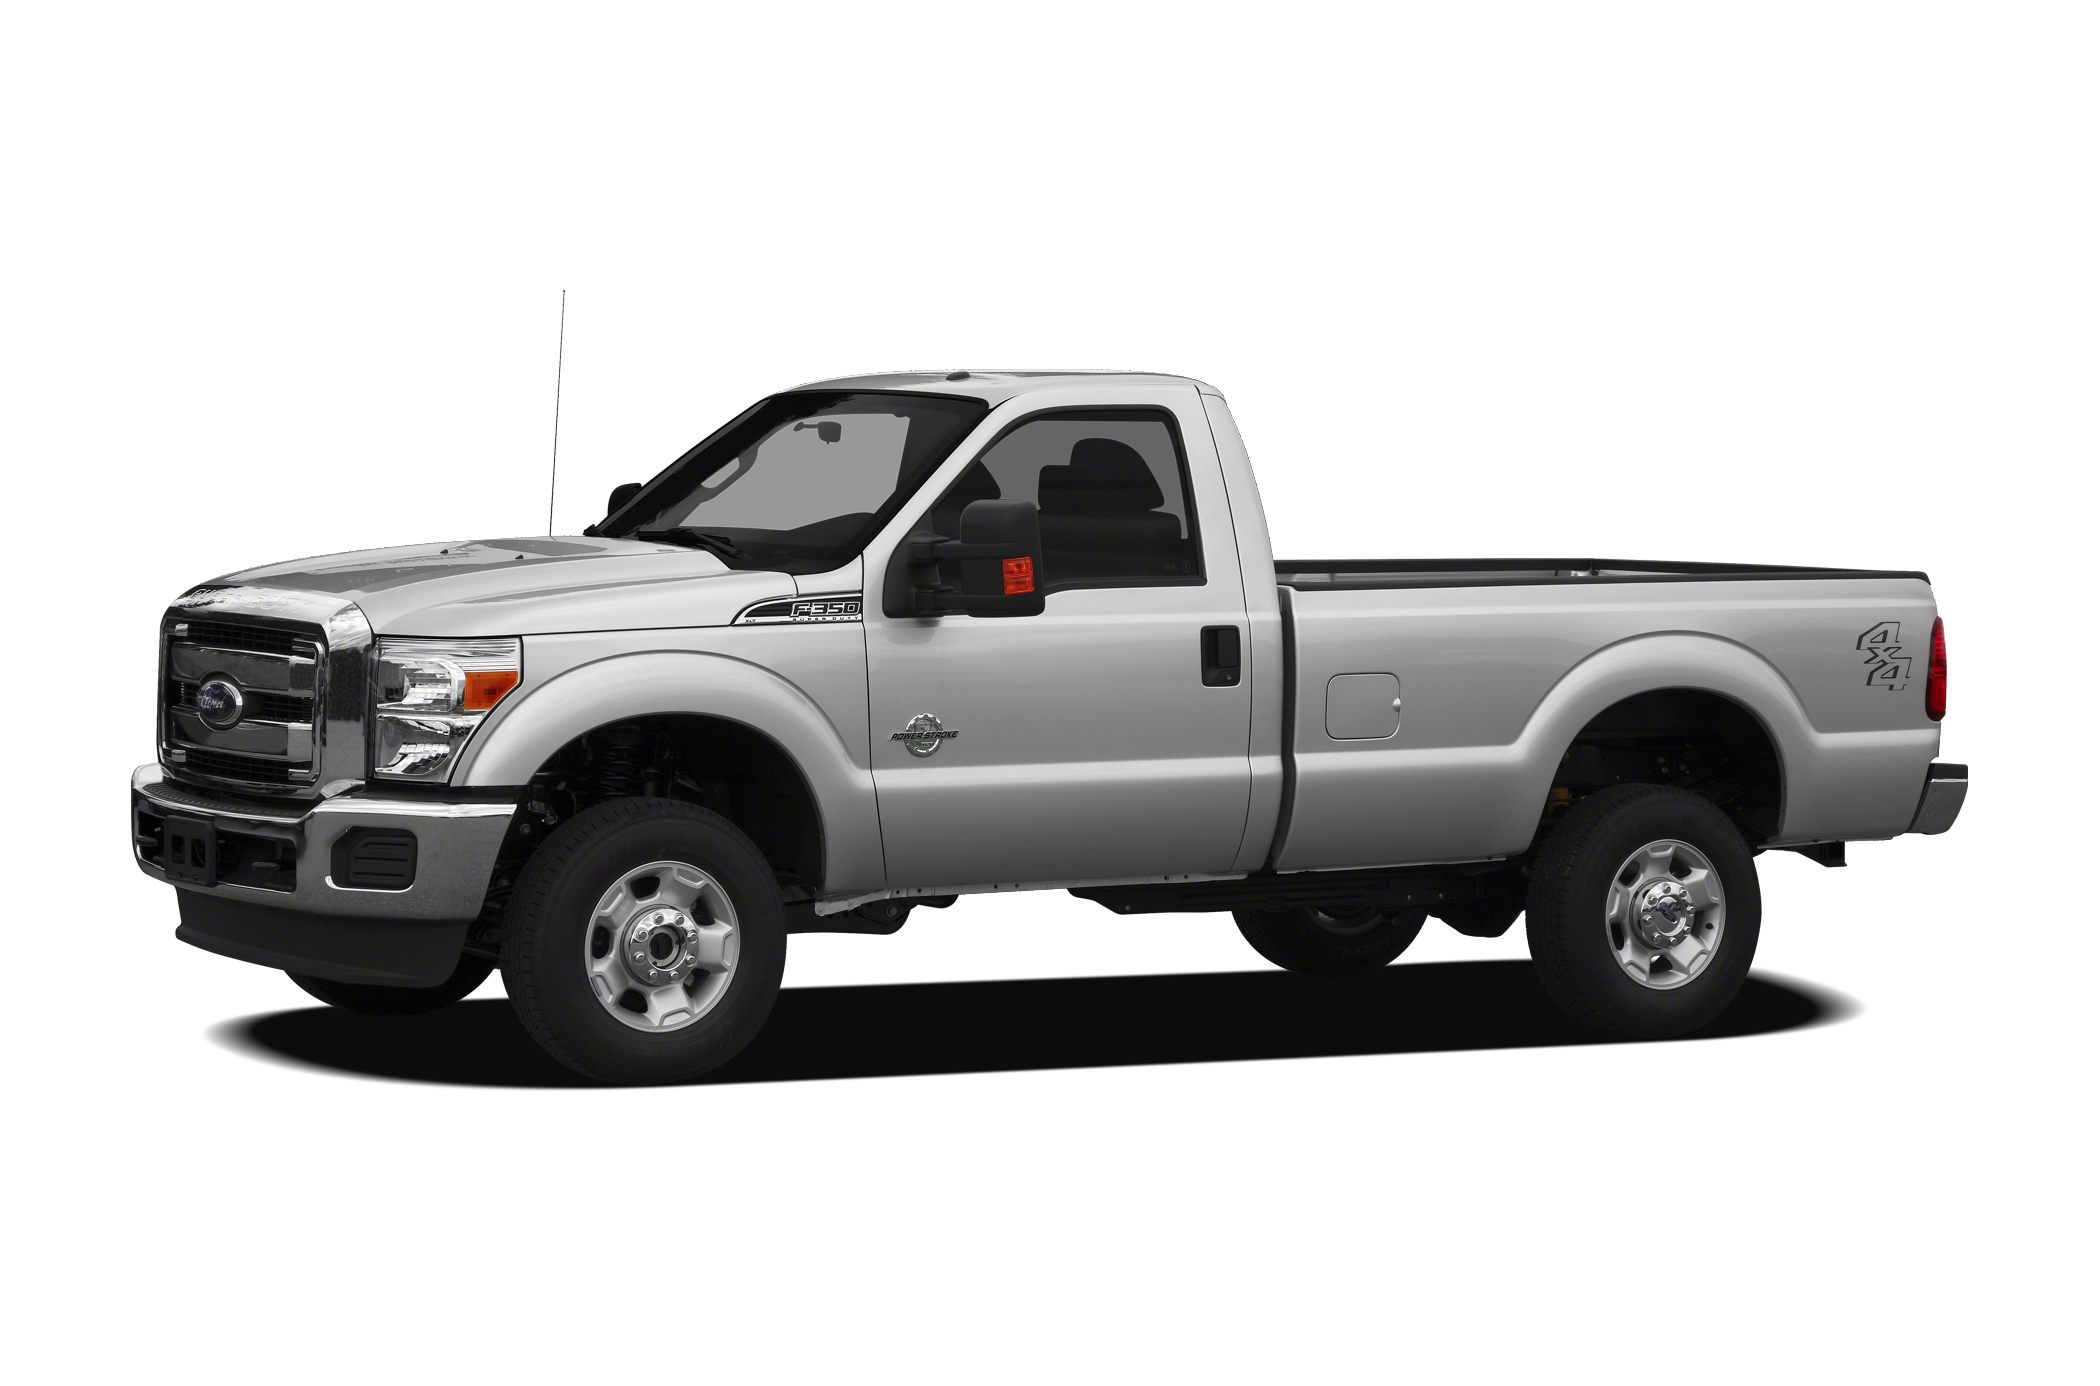 2011 Ford F350 XLT Crew Cab Pickup for sale in Connellsville for $0 with 47,855 miles